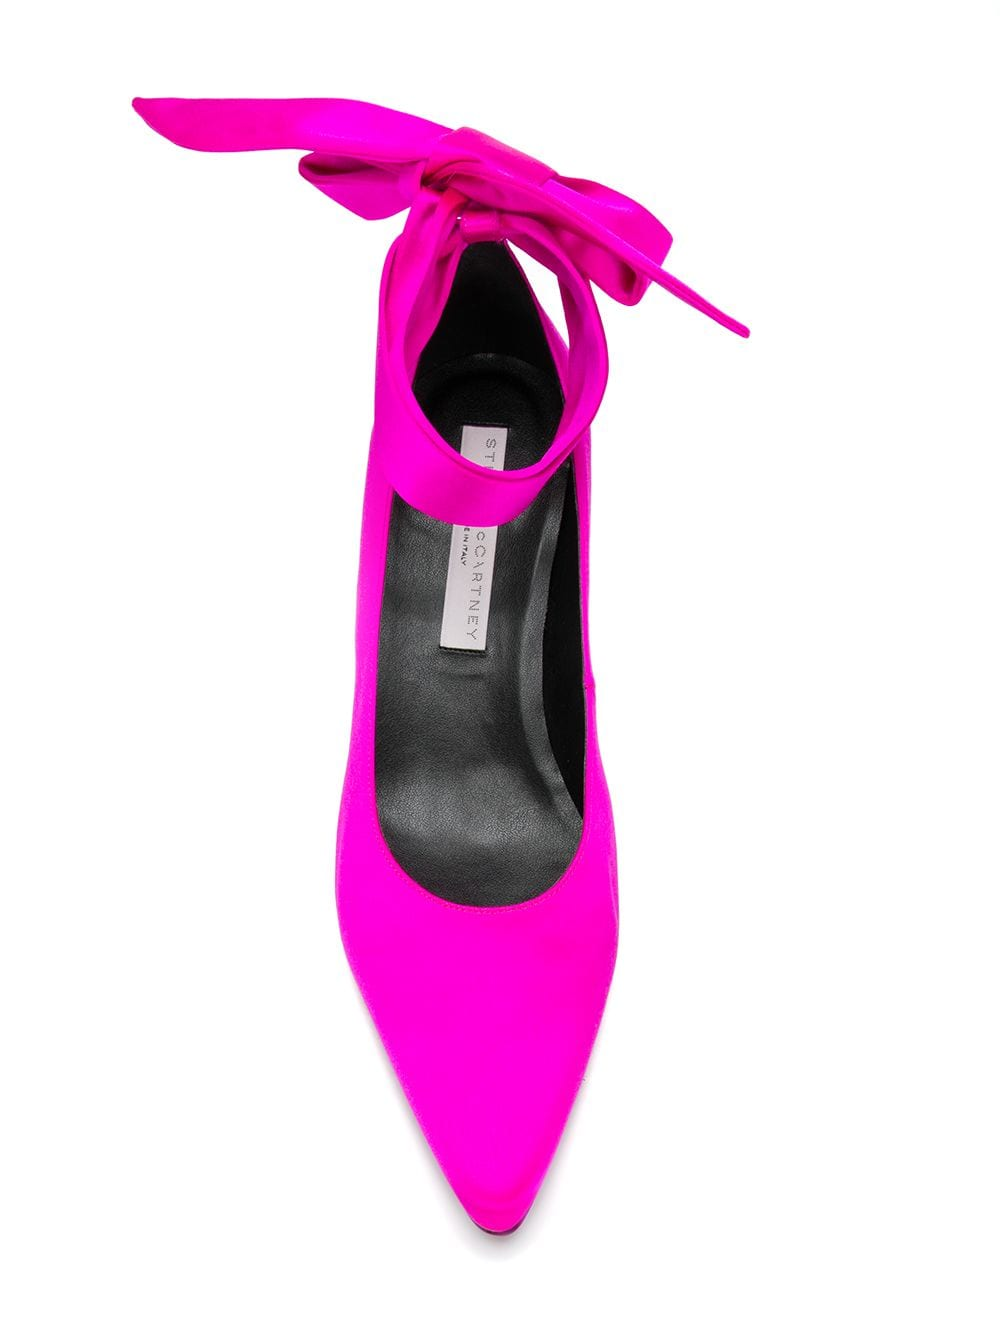 fuxia satin decolletè with ankle fastening STELLA MC CARTNEY |  | 515445-W1A215817